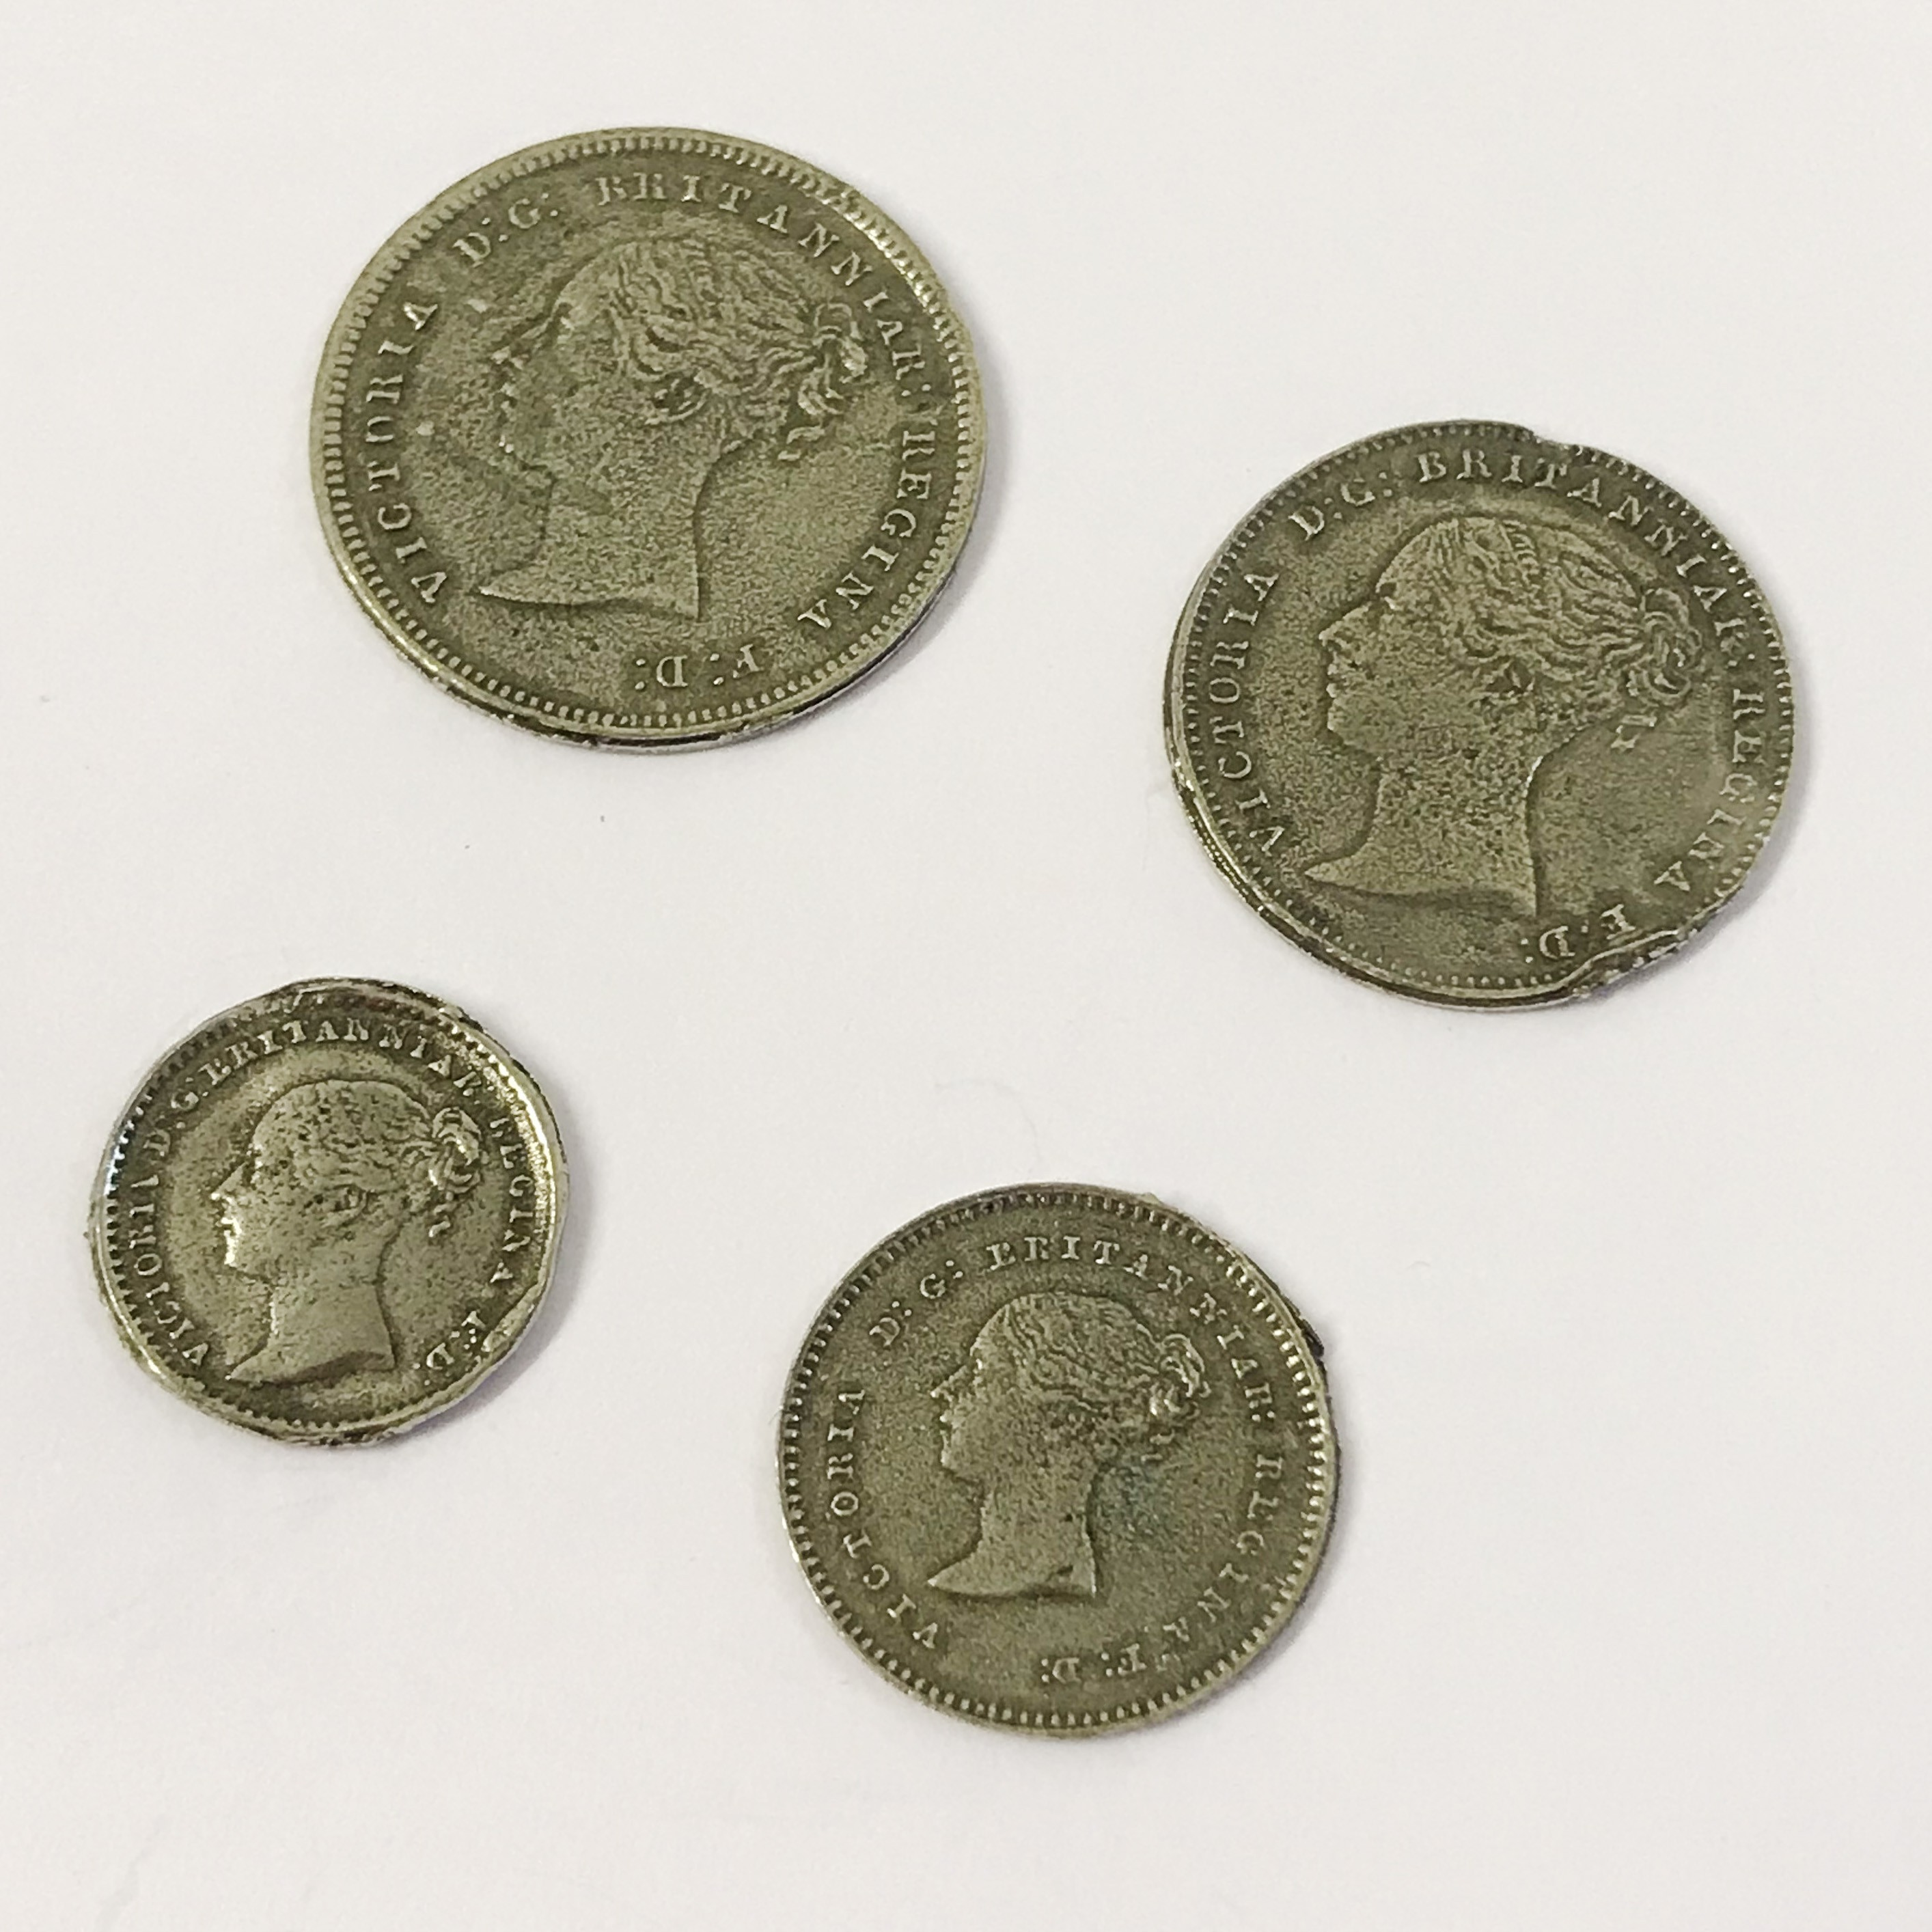 Lot 5 - WITHDRAWN - SILVER QUEEN VICTORIA MAUNDY MONEY COIN SET 1845 IN CASE